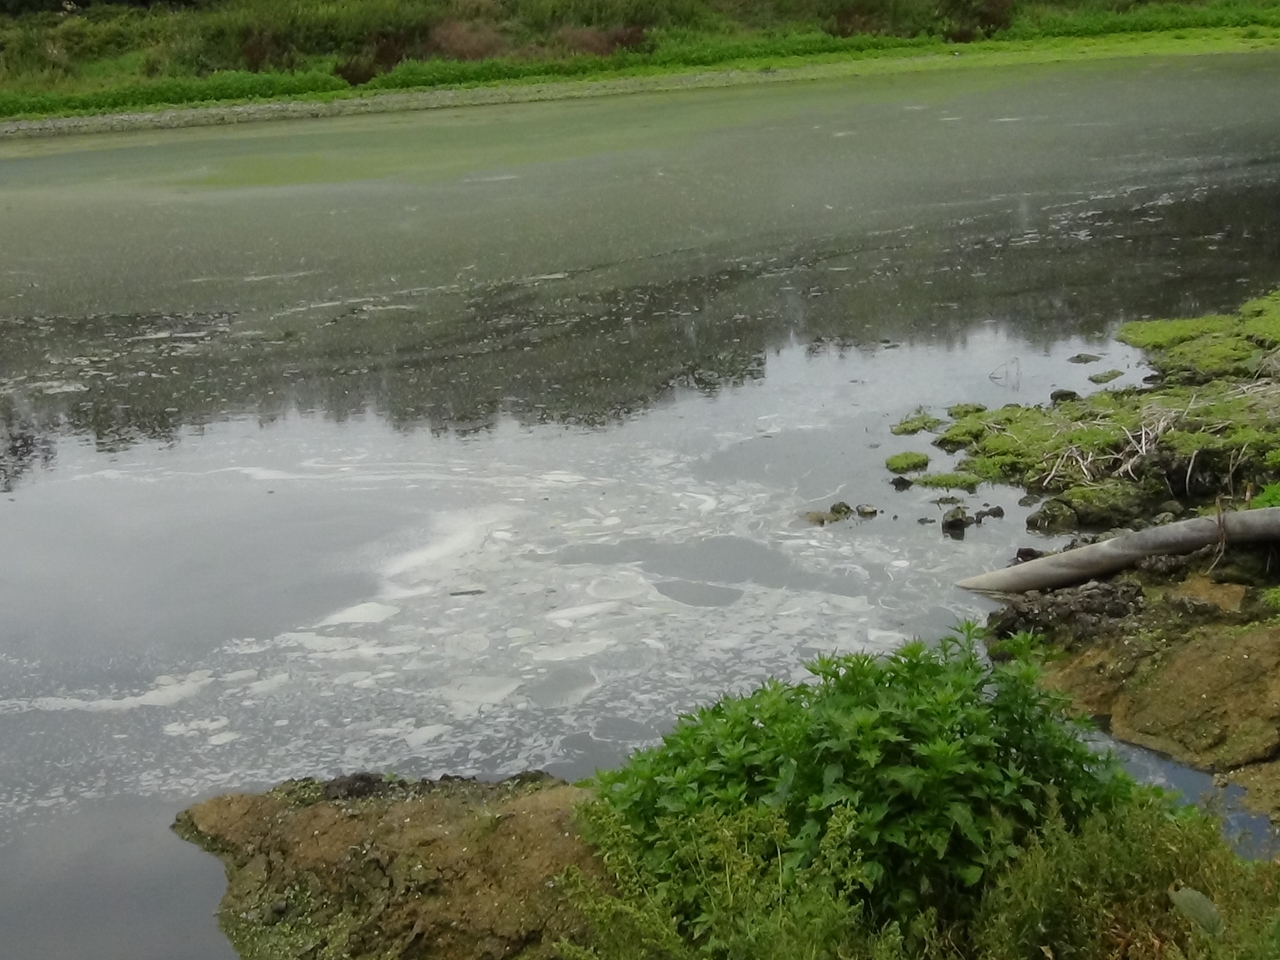 A picture of a pipe depositing waste into a lagoon on Crouchland Farm